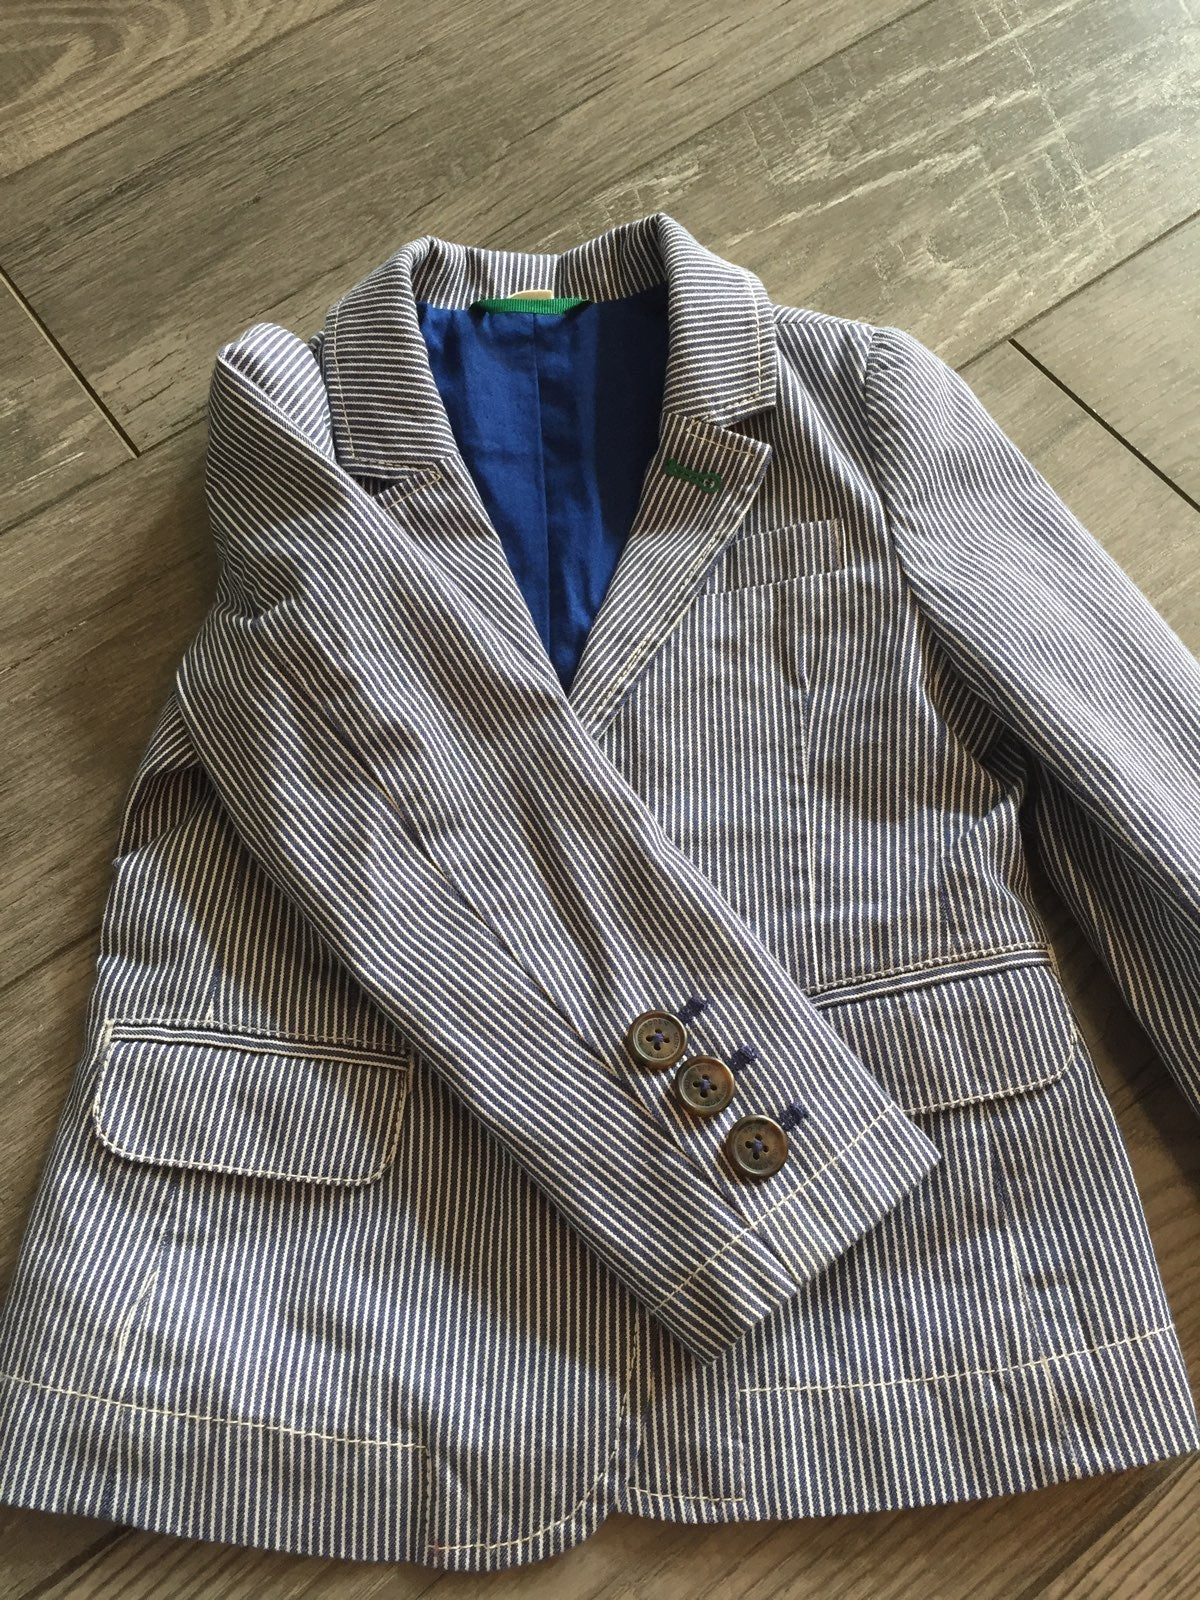 Mini Boden Blazer For Boy 3-4yrs